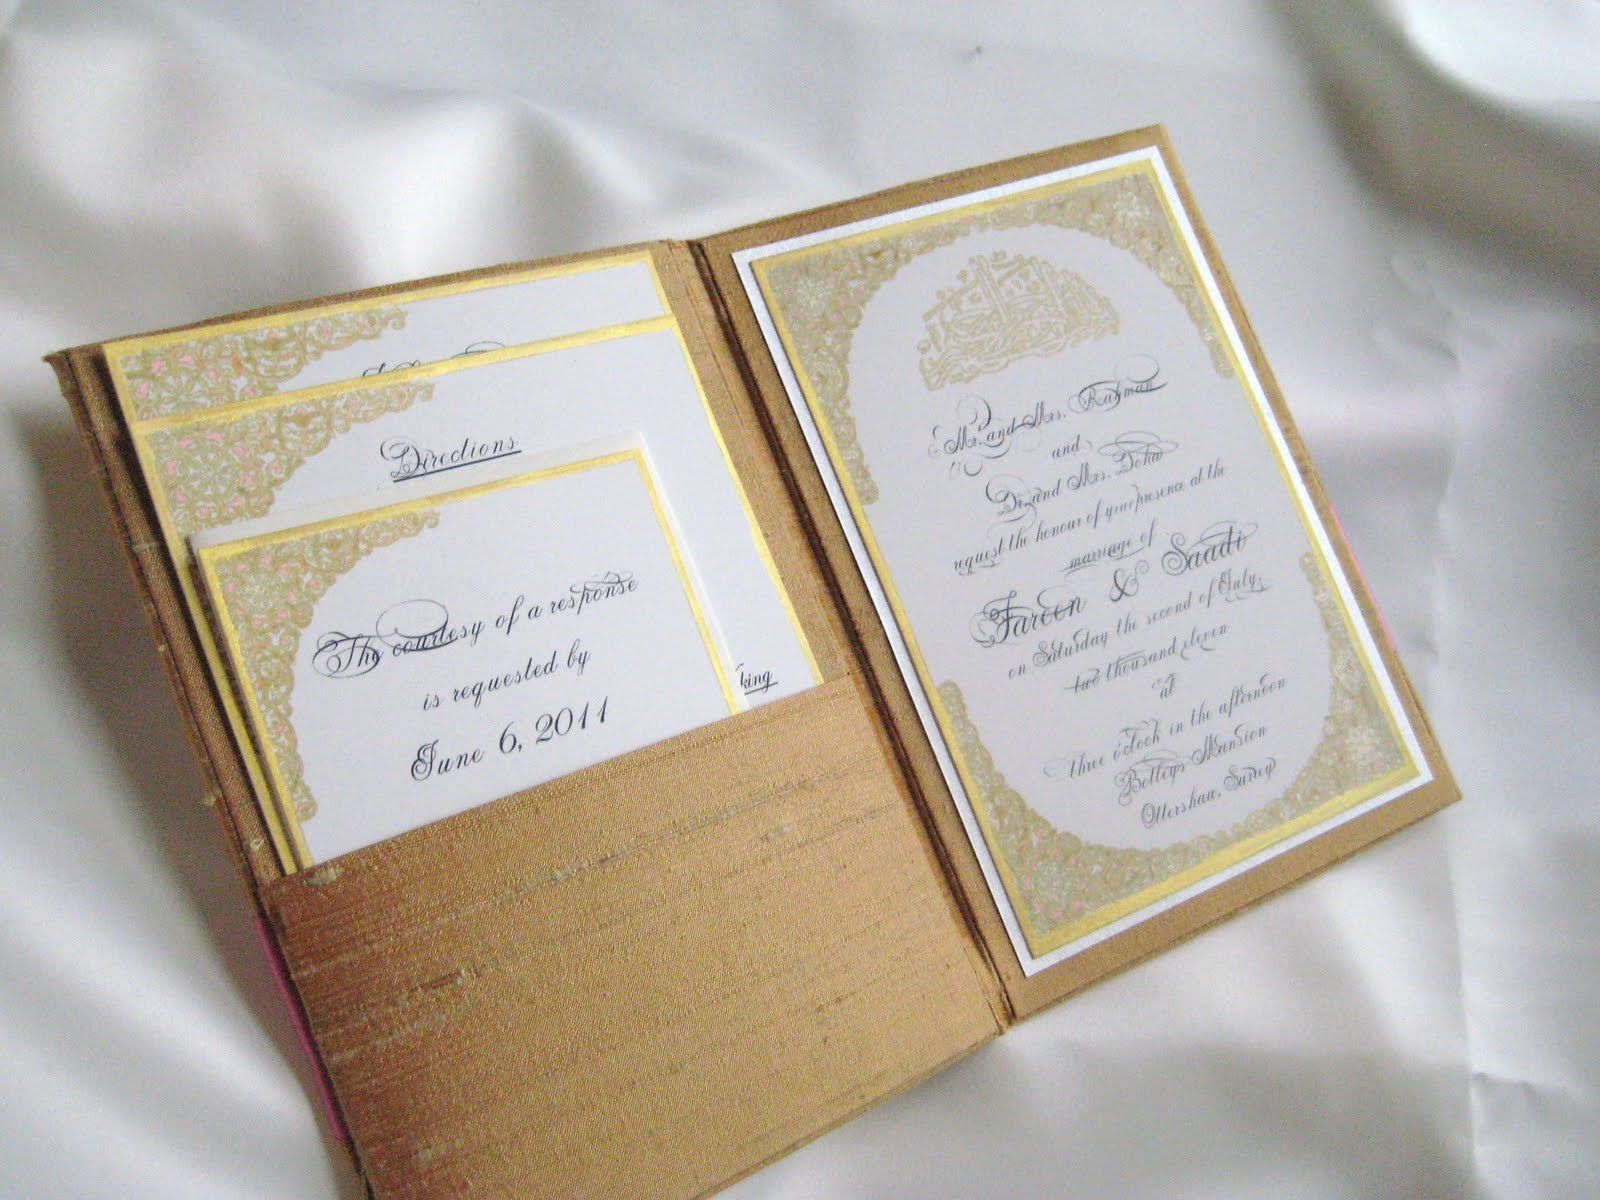 16 papyrus wedding invitations 16 papyrus wedding invitations, Wedding invitations